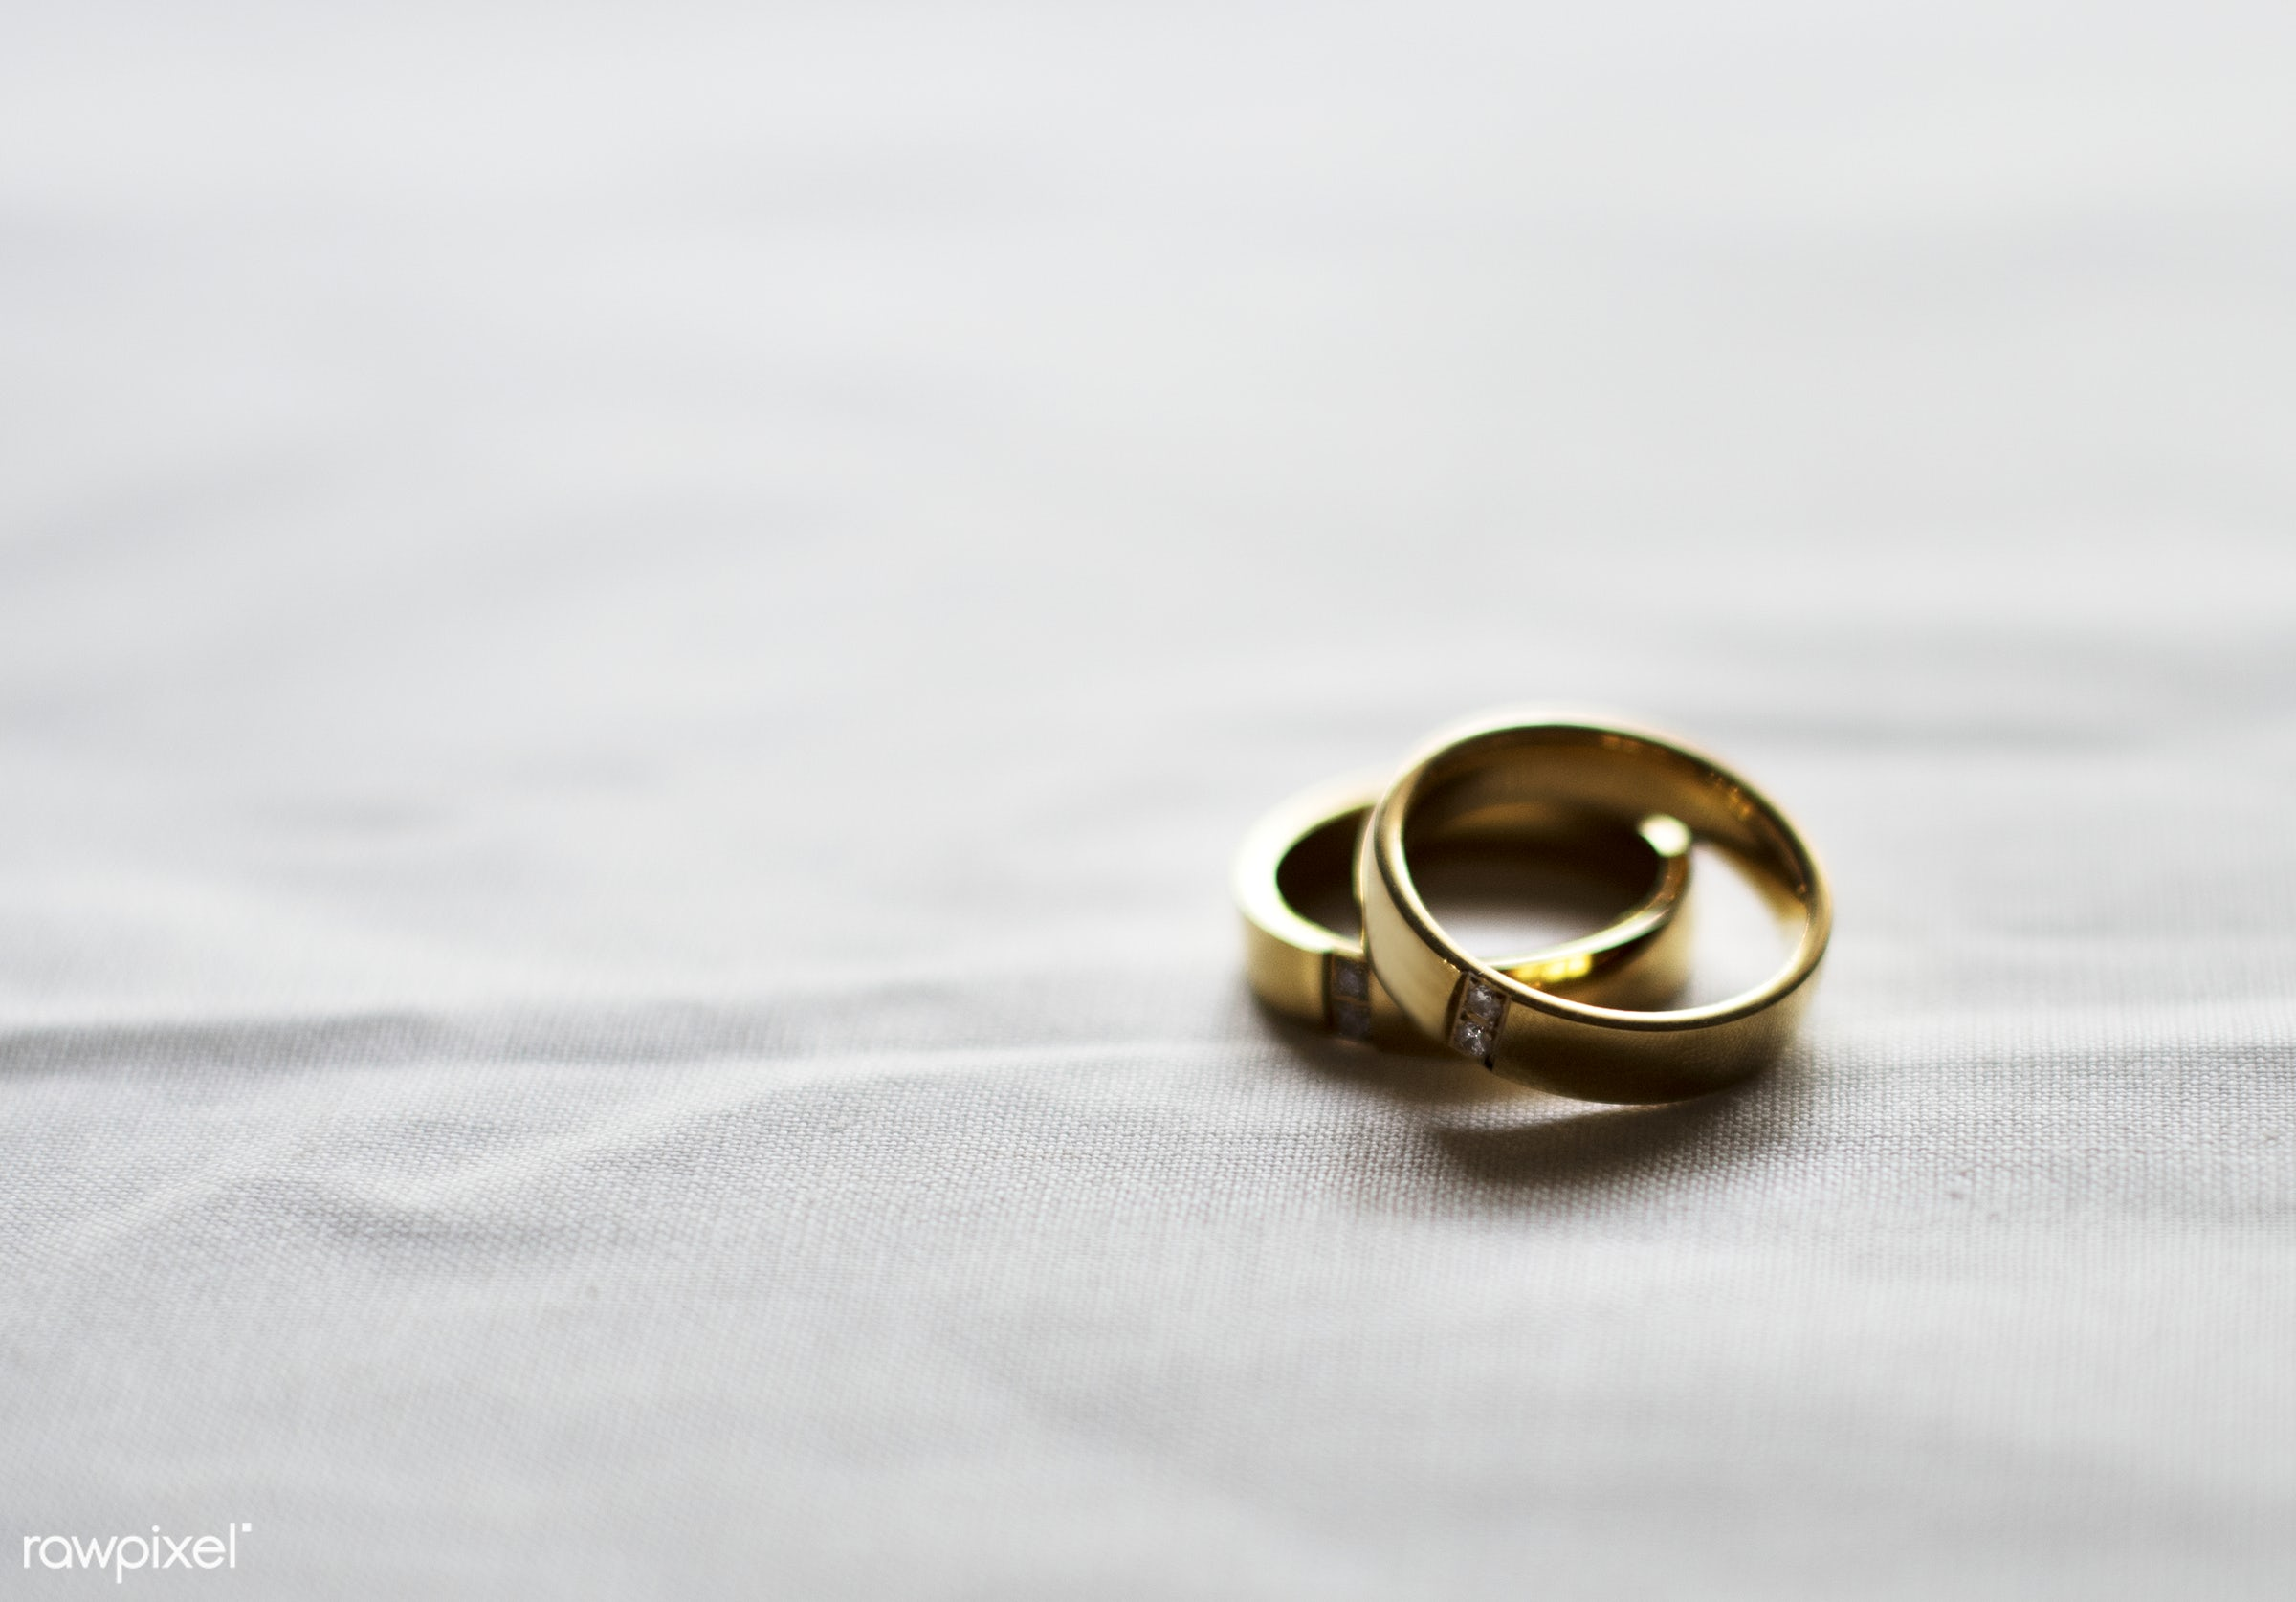 nobody, pair, together, jewel, rings, gold, closeup, white cloth, fiance, white background, prepare, ceremony, marriage, two...